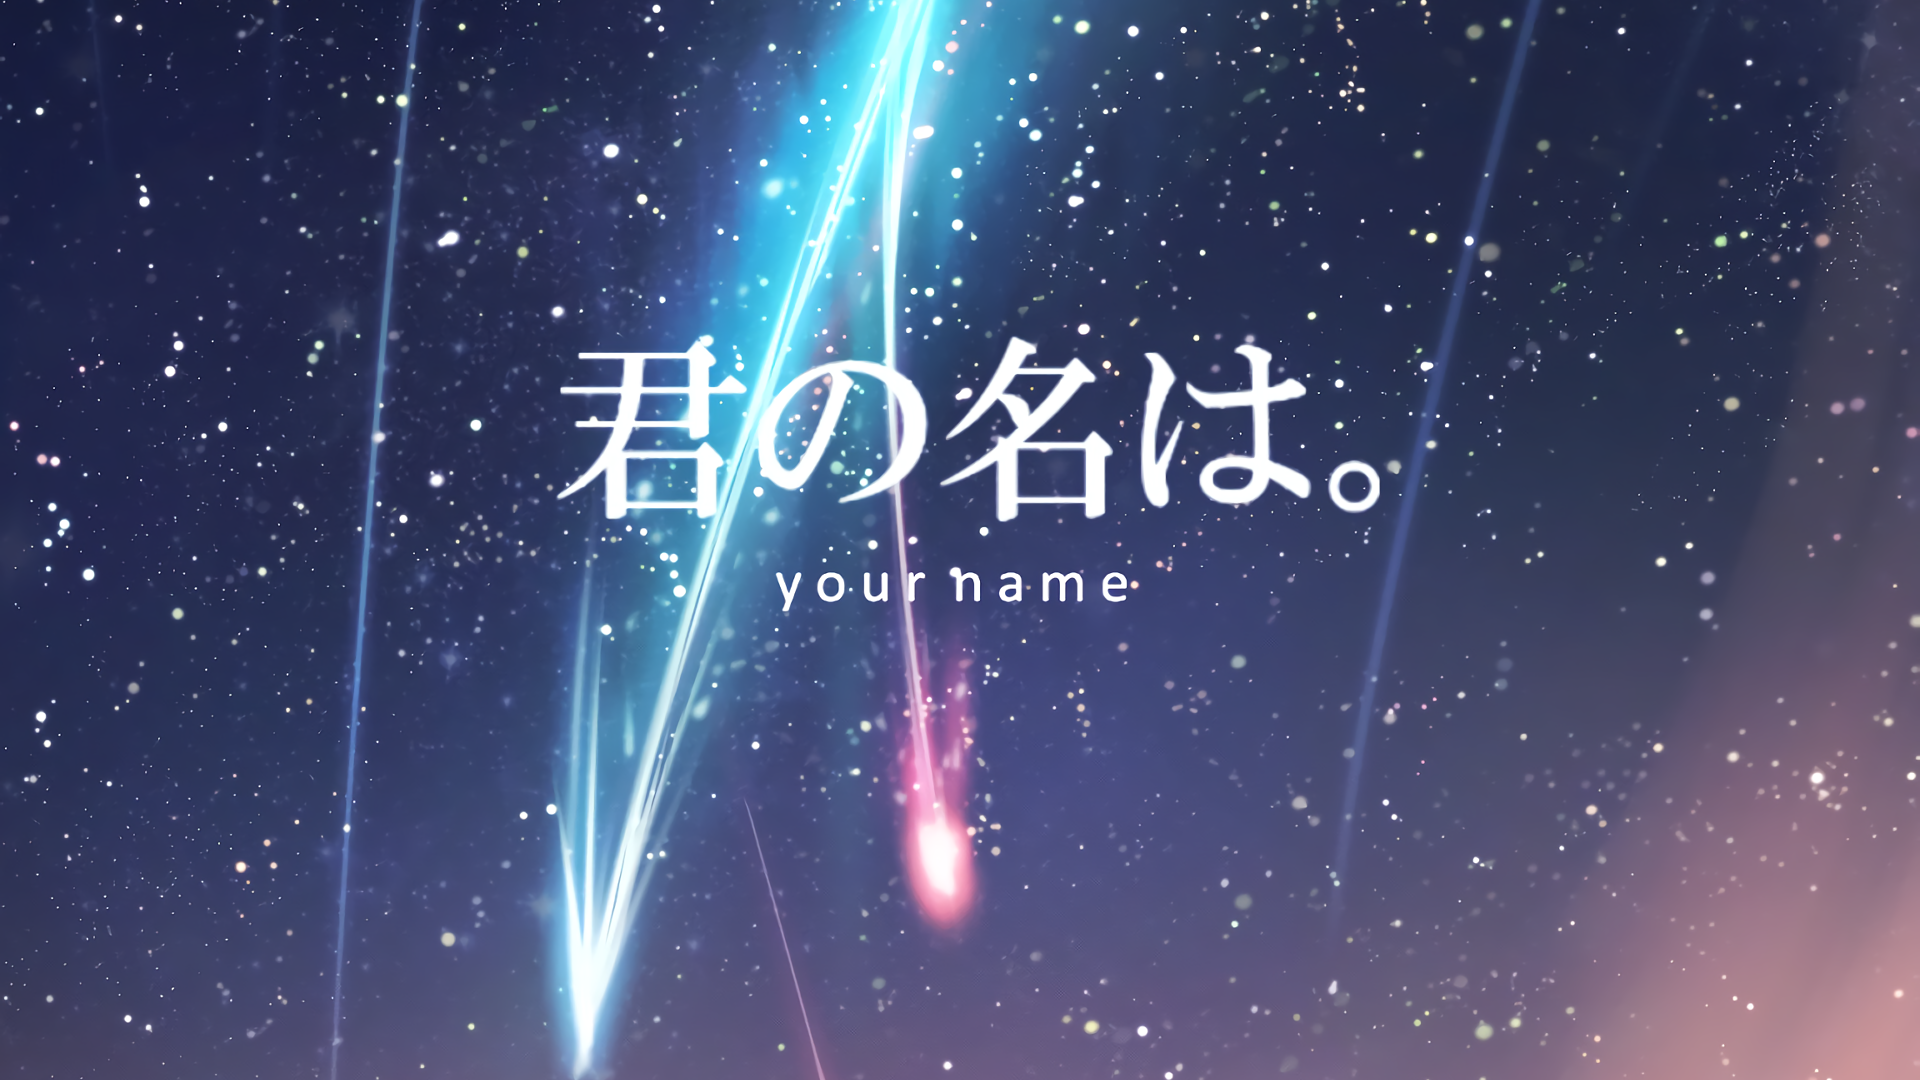 Download 1920x1080 Your Name Sky Night Falling Stars 1920x1080